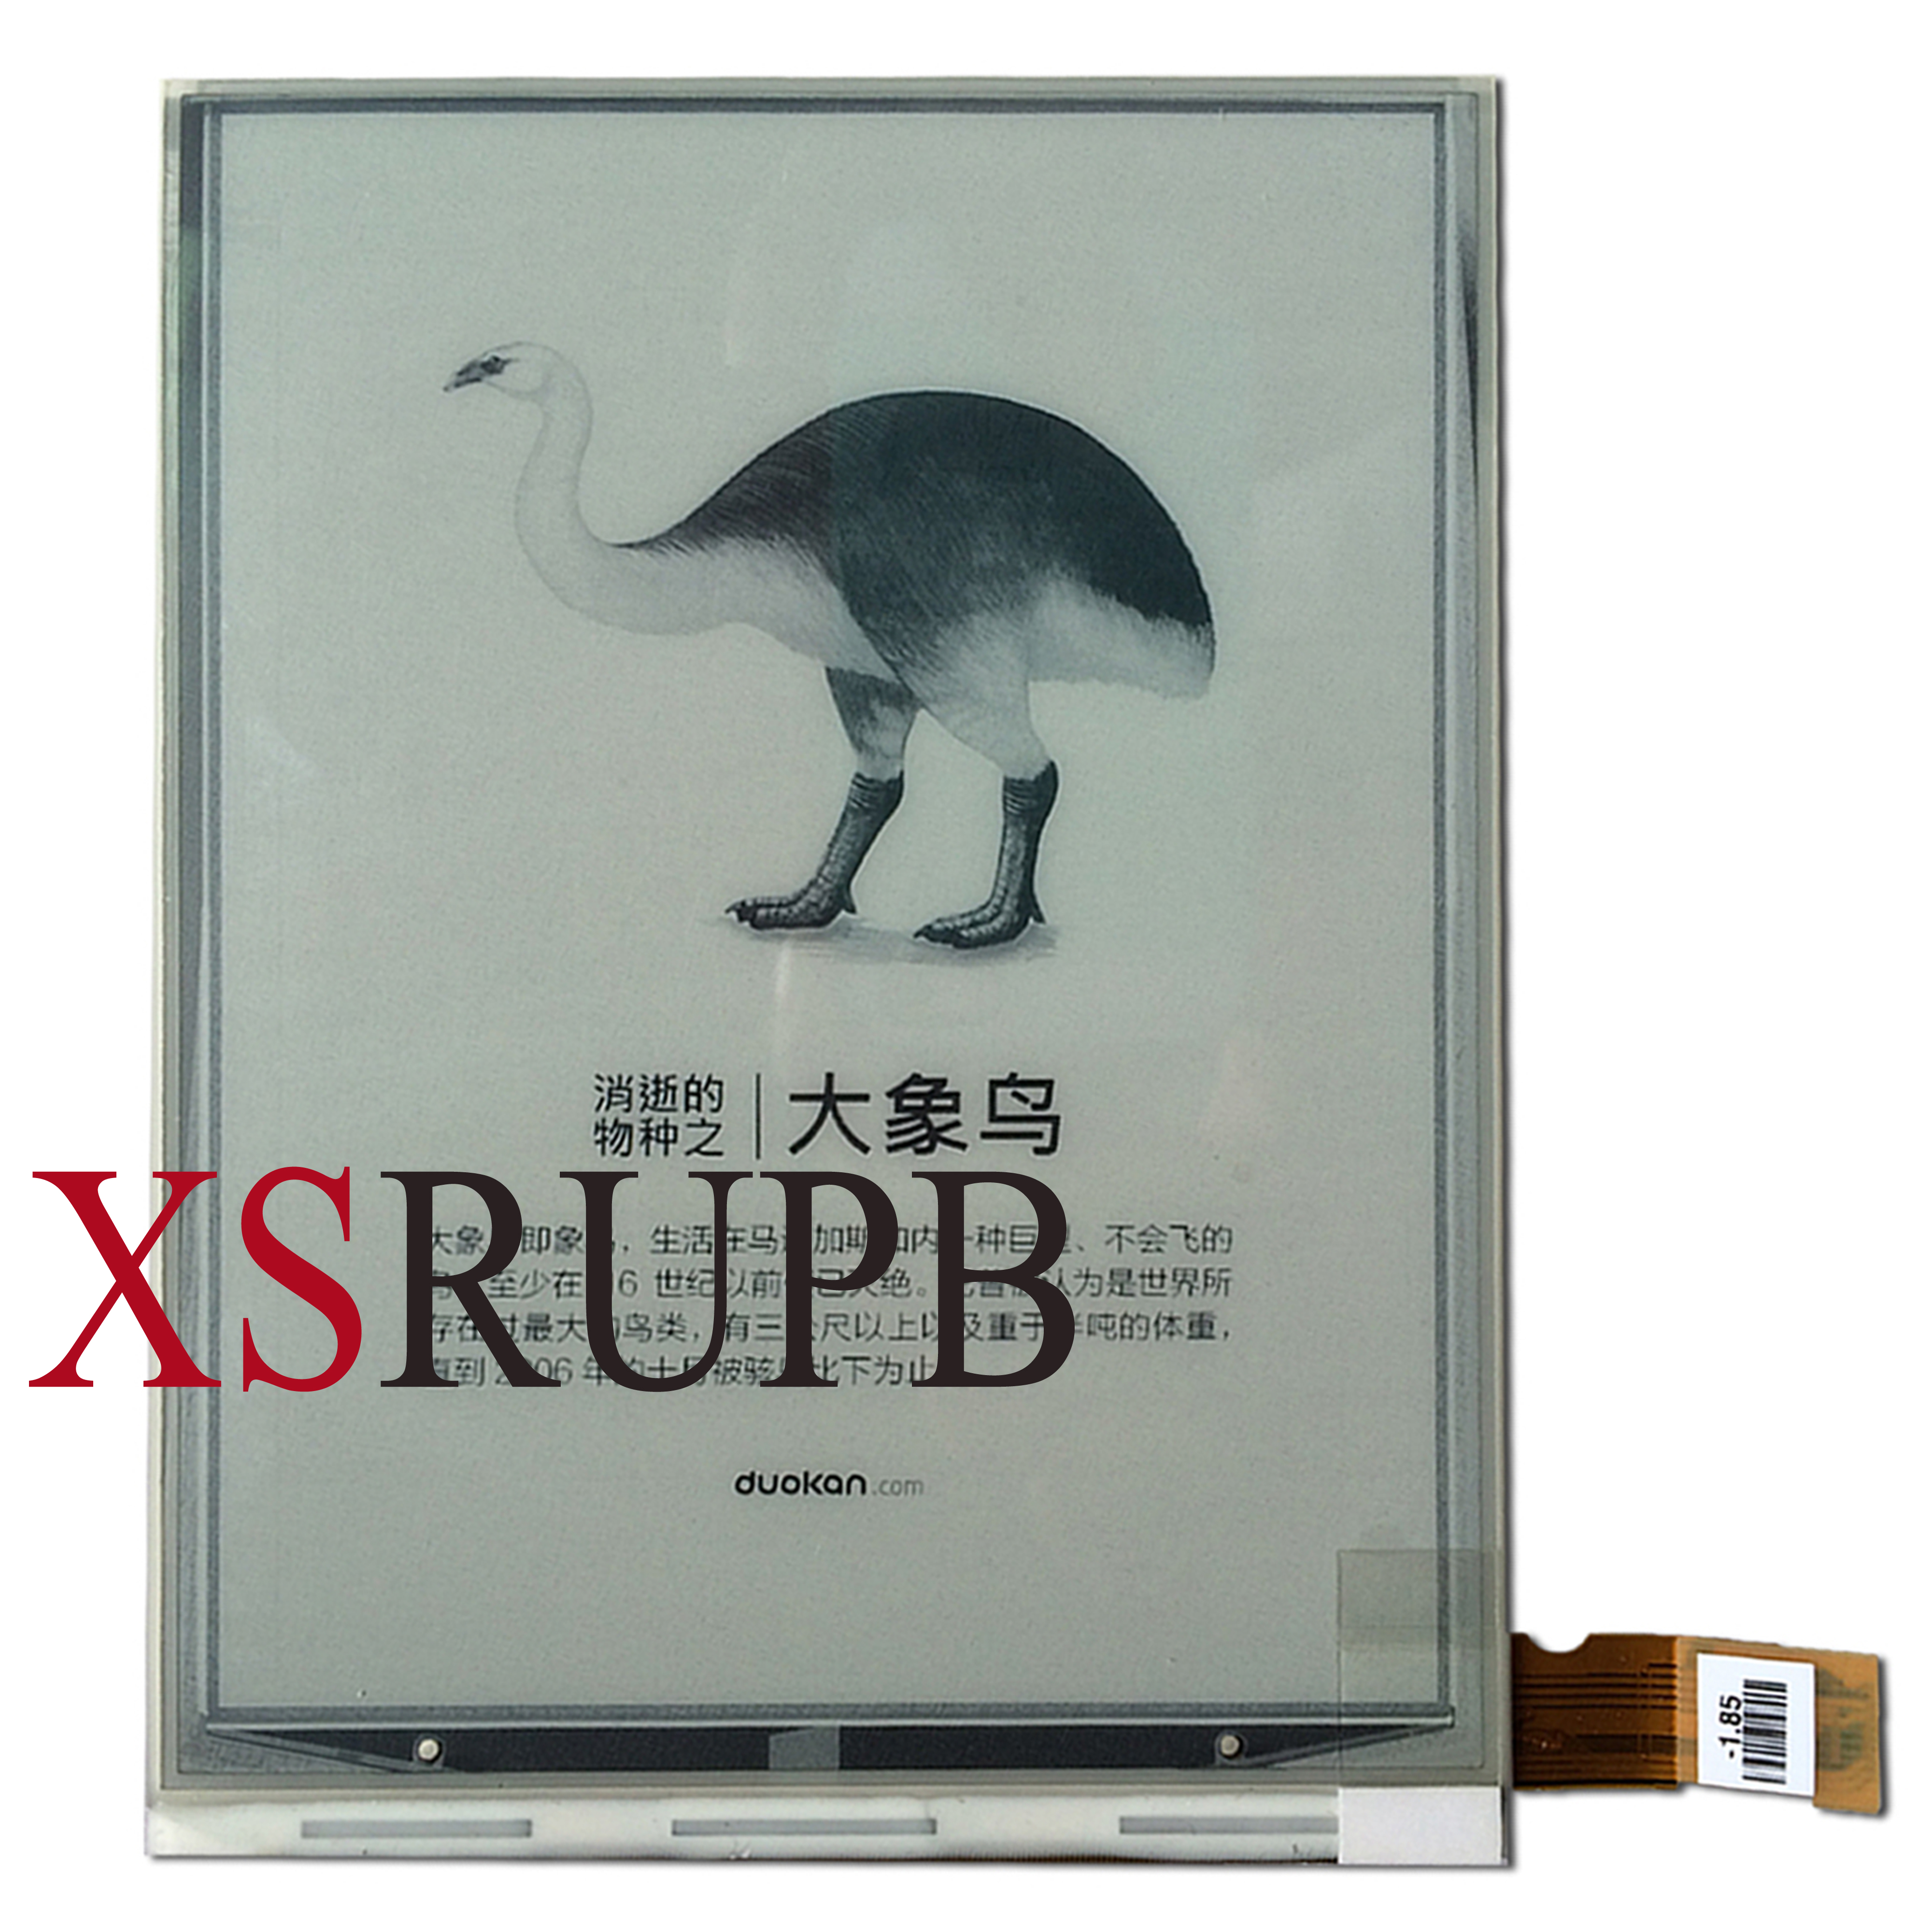 for kobo touch Screen N905C N905A 6 inch ebook reader LCD screen100% Original<br>